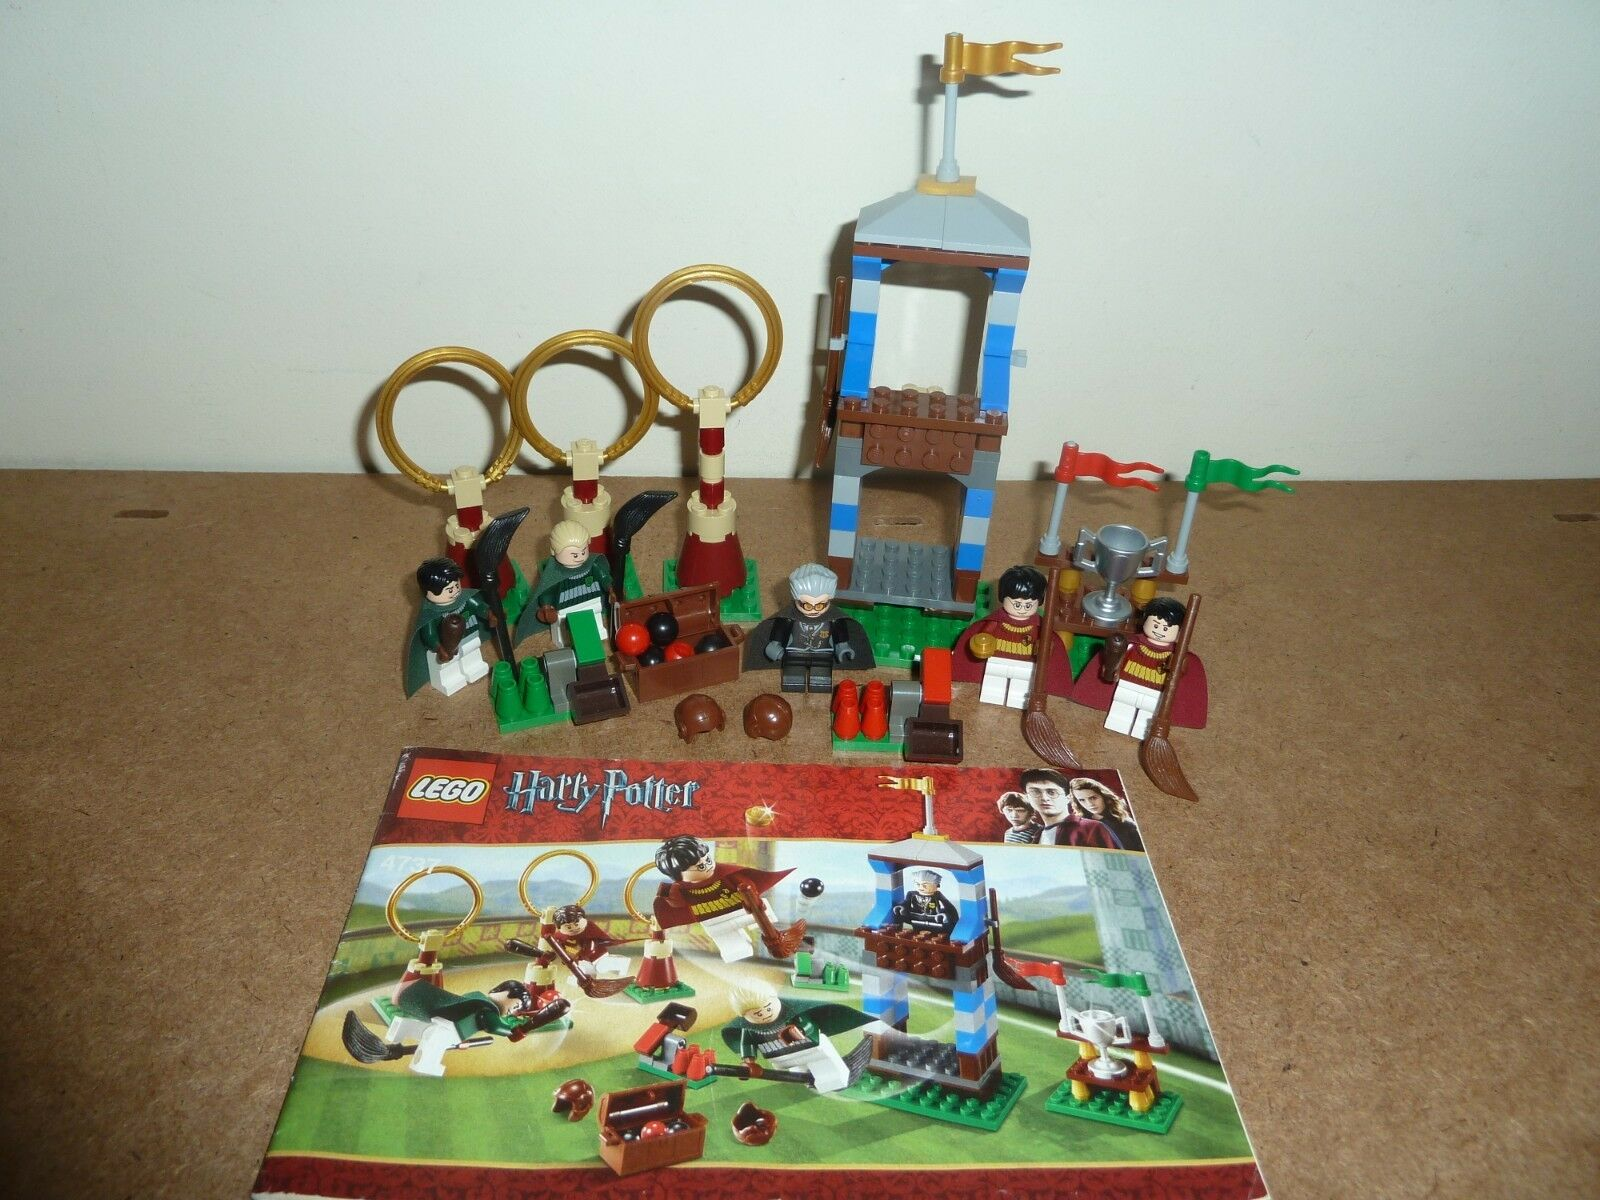 LEGO HARRY POTTER 4737 QUIDDITCH MATCH COMPLETE 5 FIGURES INSTRUCTIONS